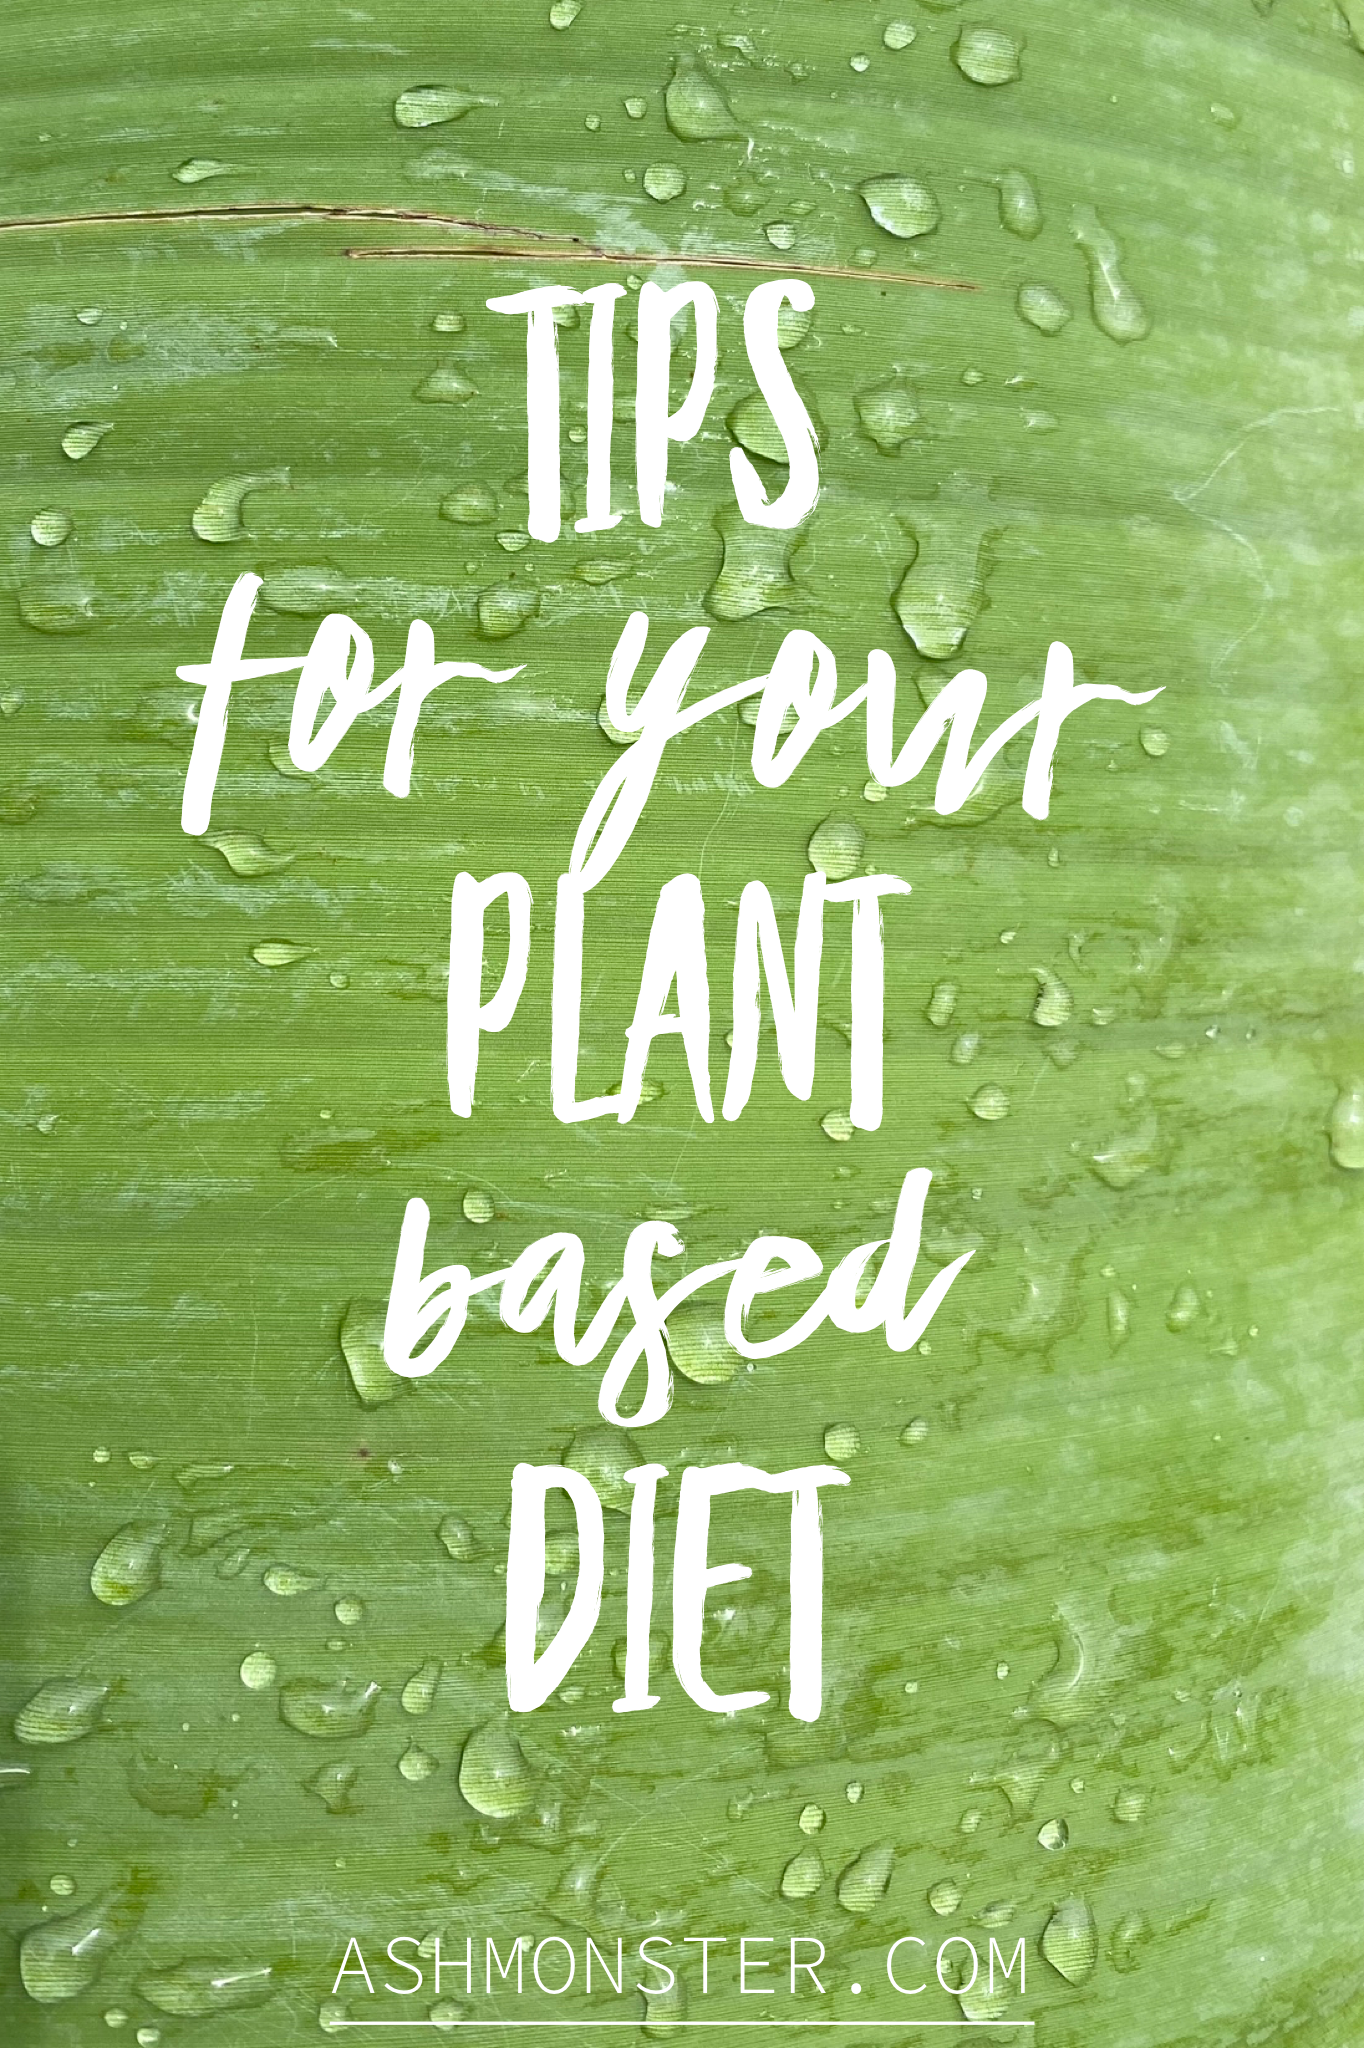 banana leaf with text tips for your plant based diet from ashmonster.com